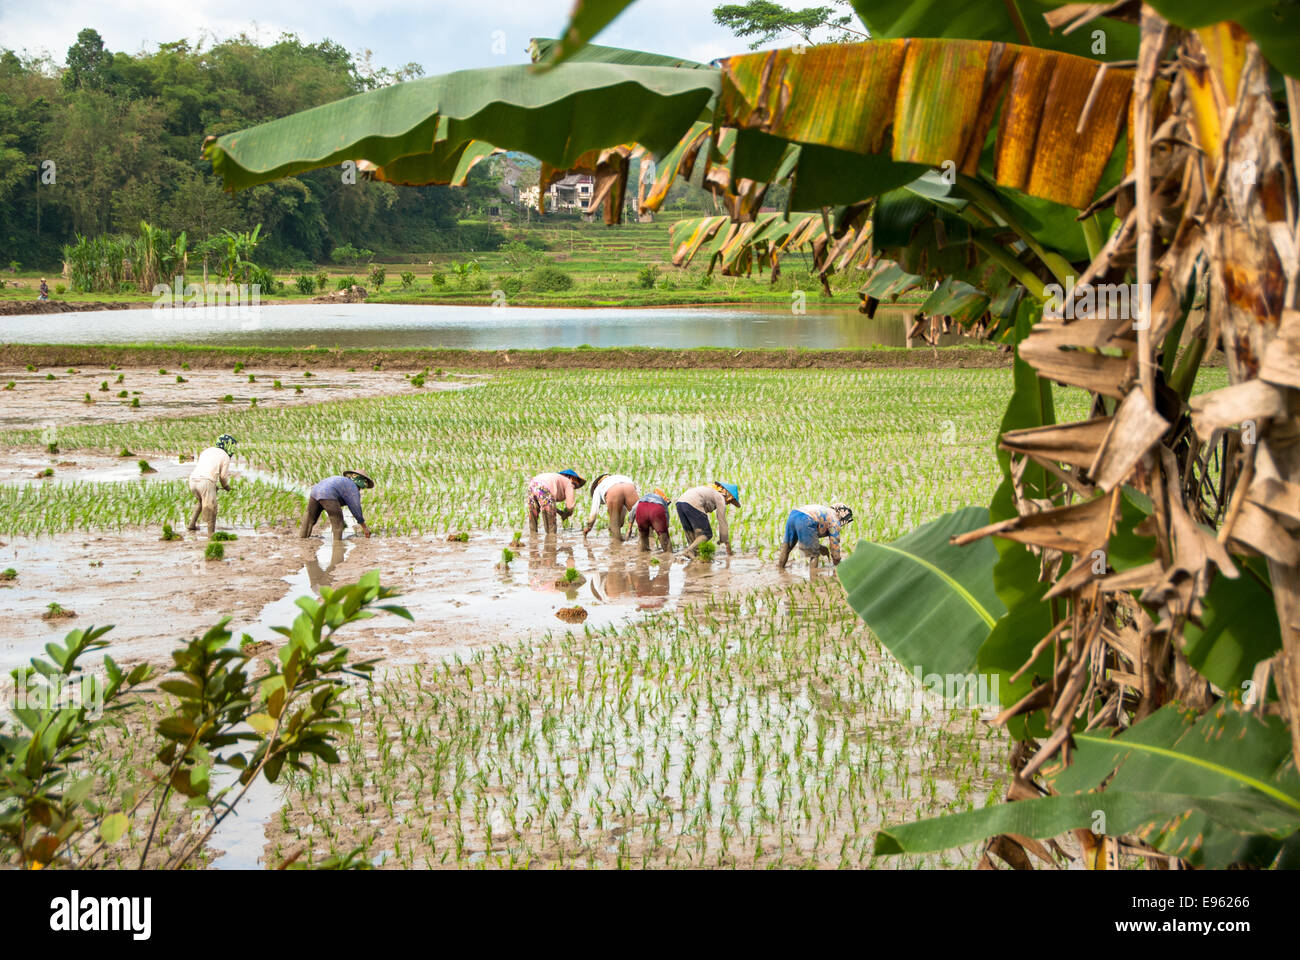 people planting rice plants at paddy in kete kesu at sulawesi in indonesia - Stock Image